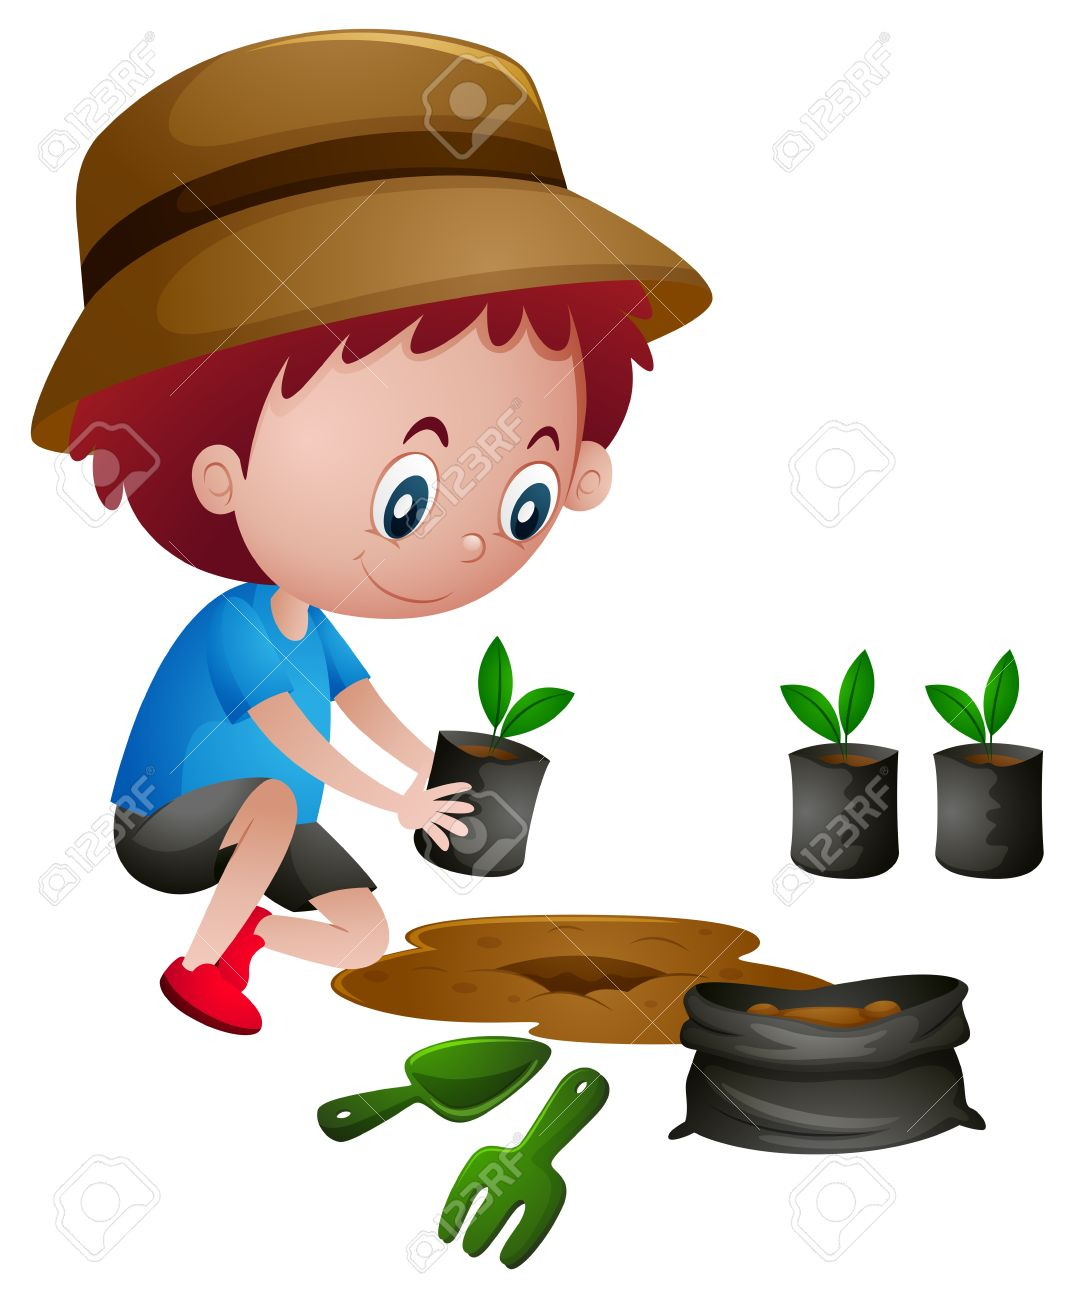 Boy planting trees in the ground illustration - 66895385